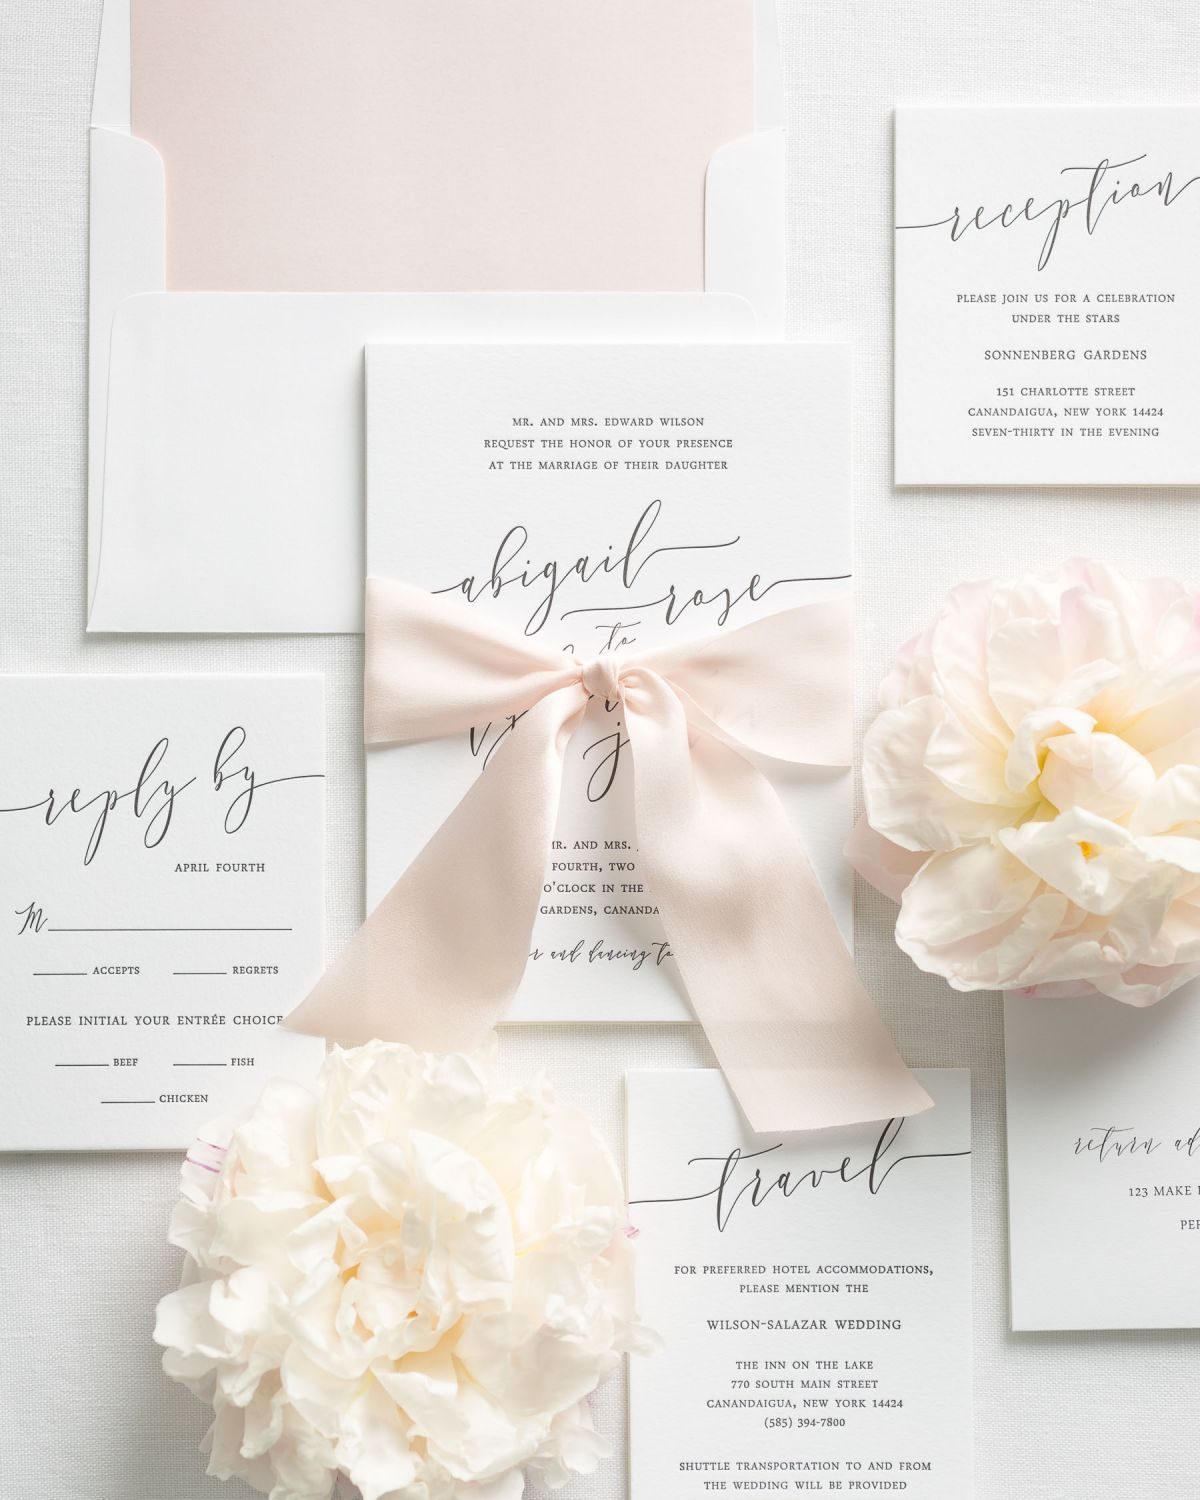 Letterpress Wedding Invitations with Envelope Liners and Silk Ribbon